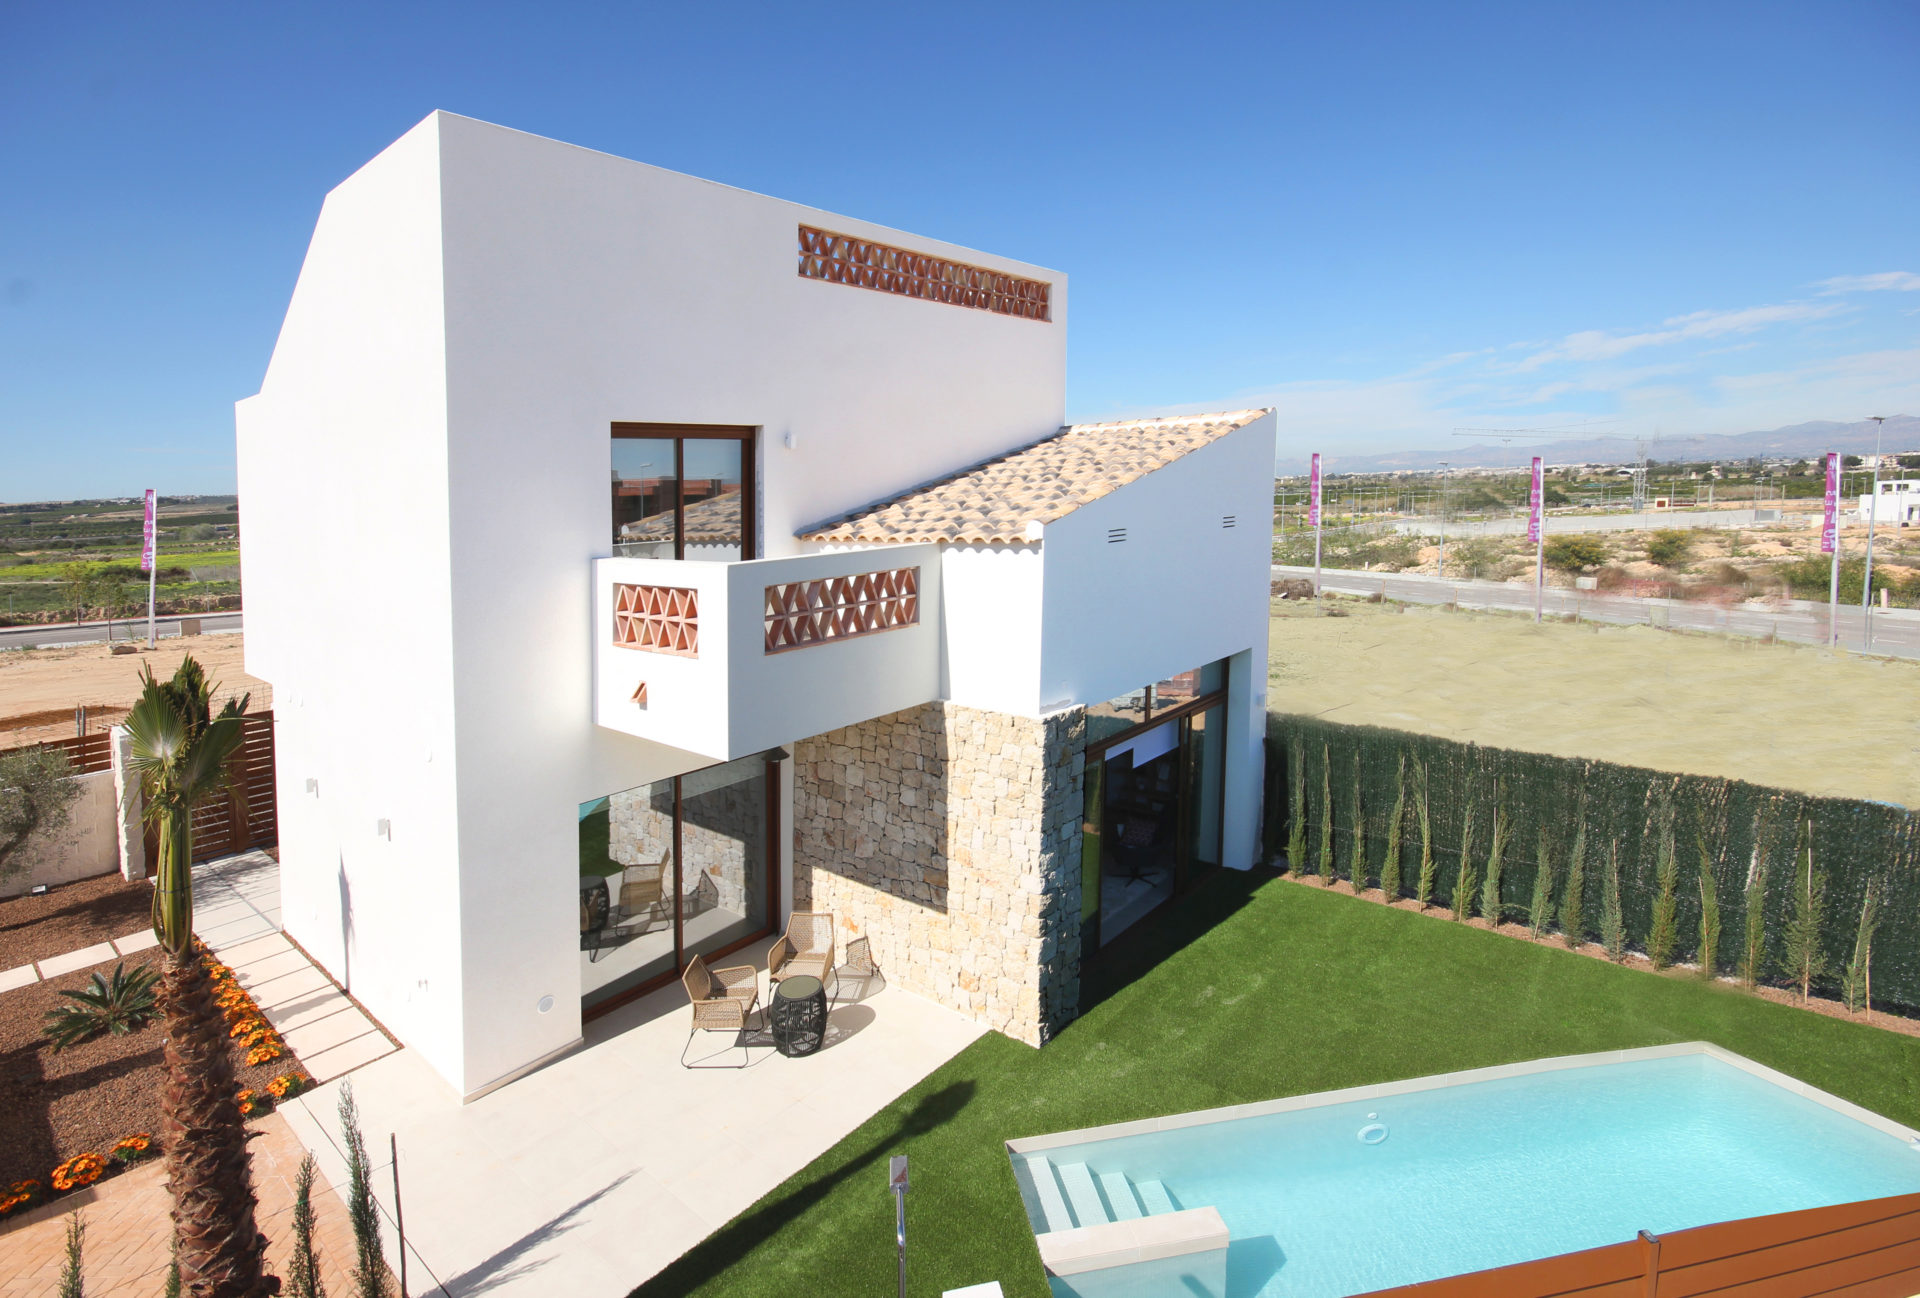 3 Bedroom Luxury Villa – Benijofar 4